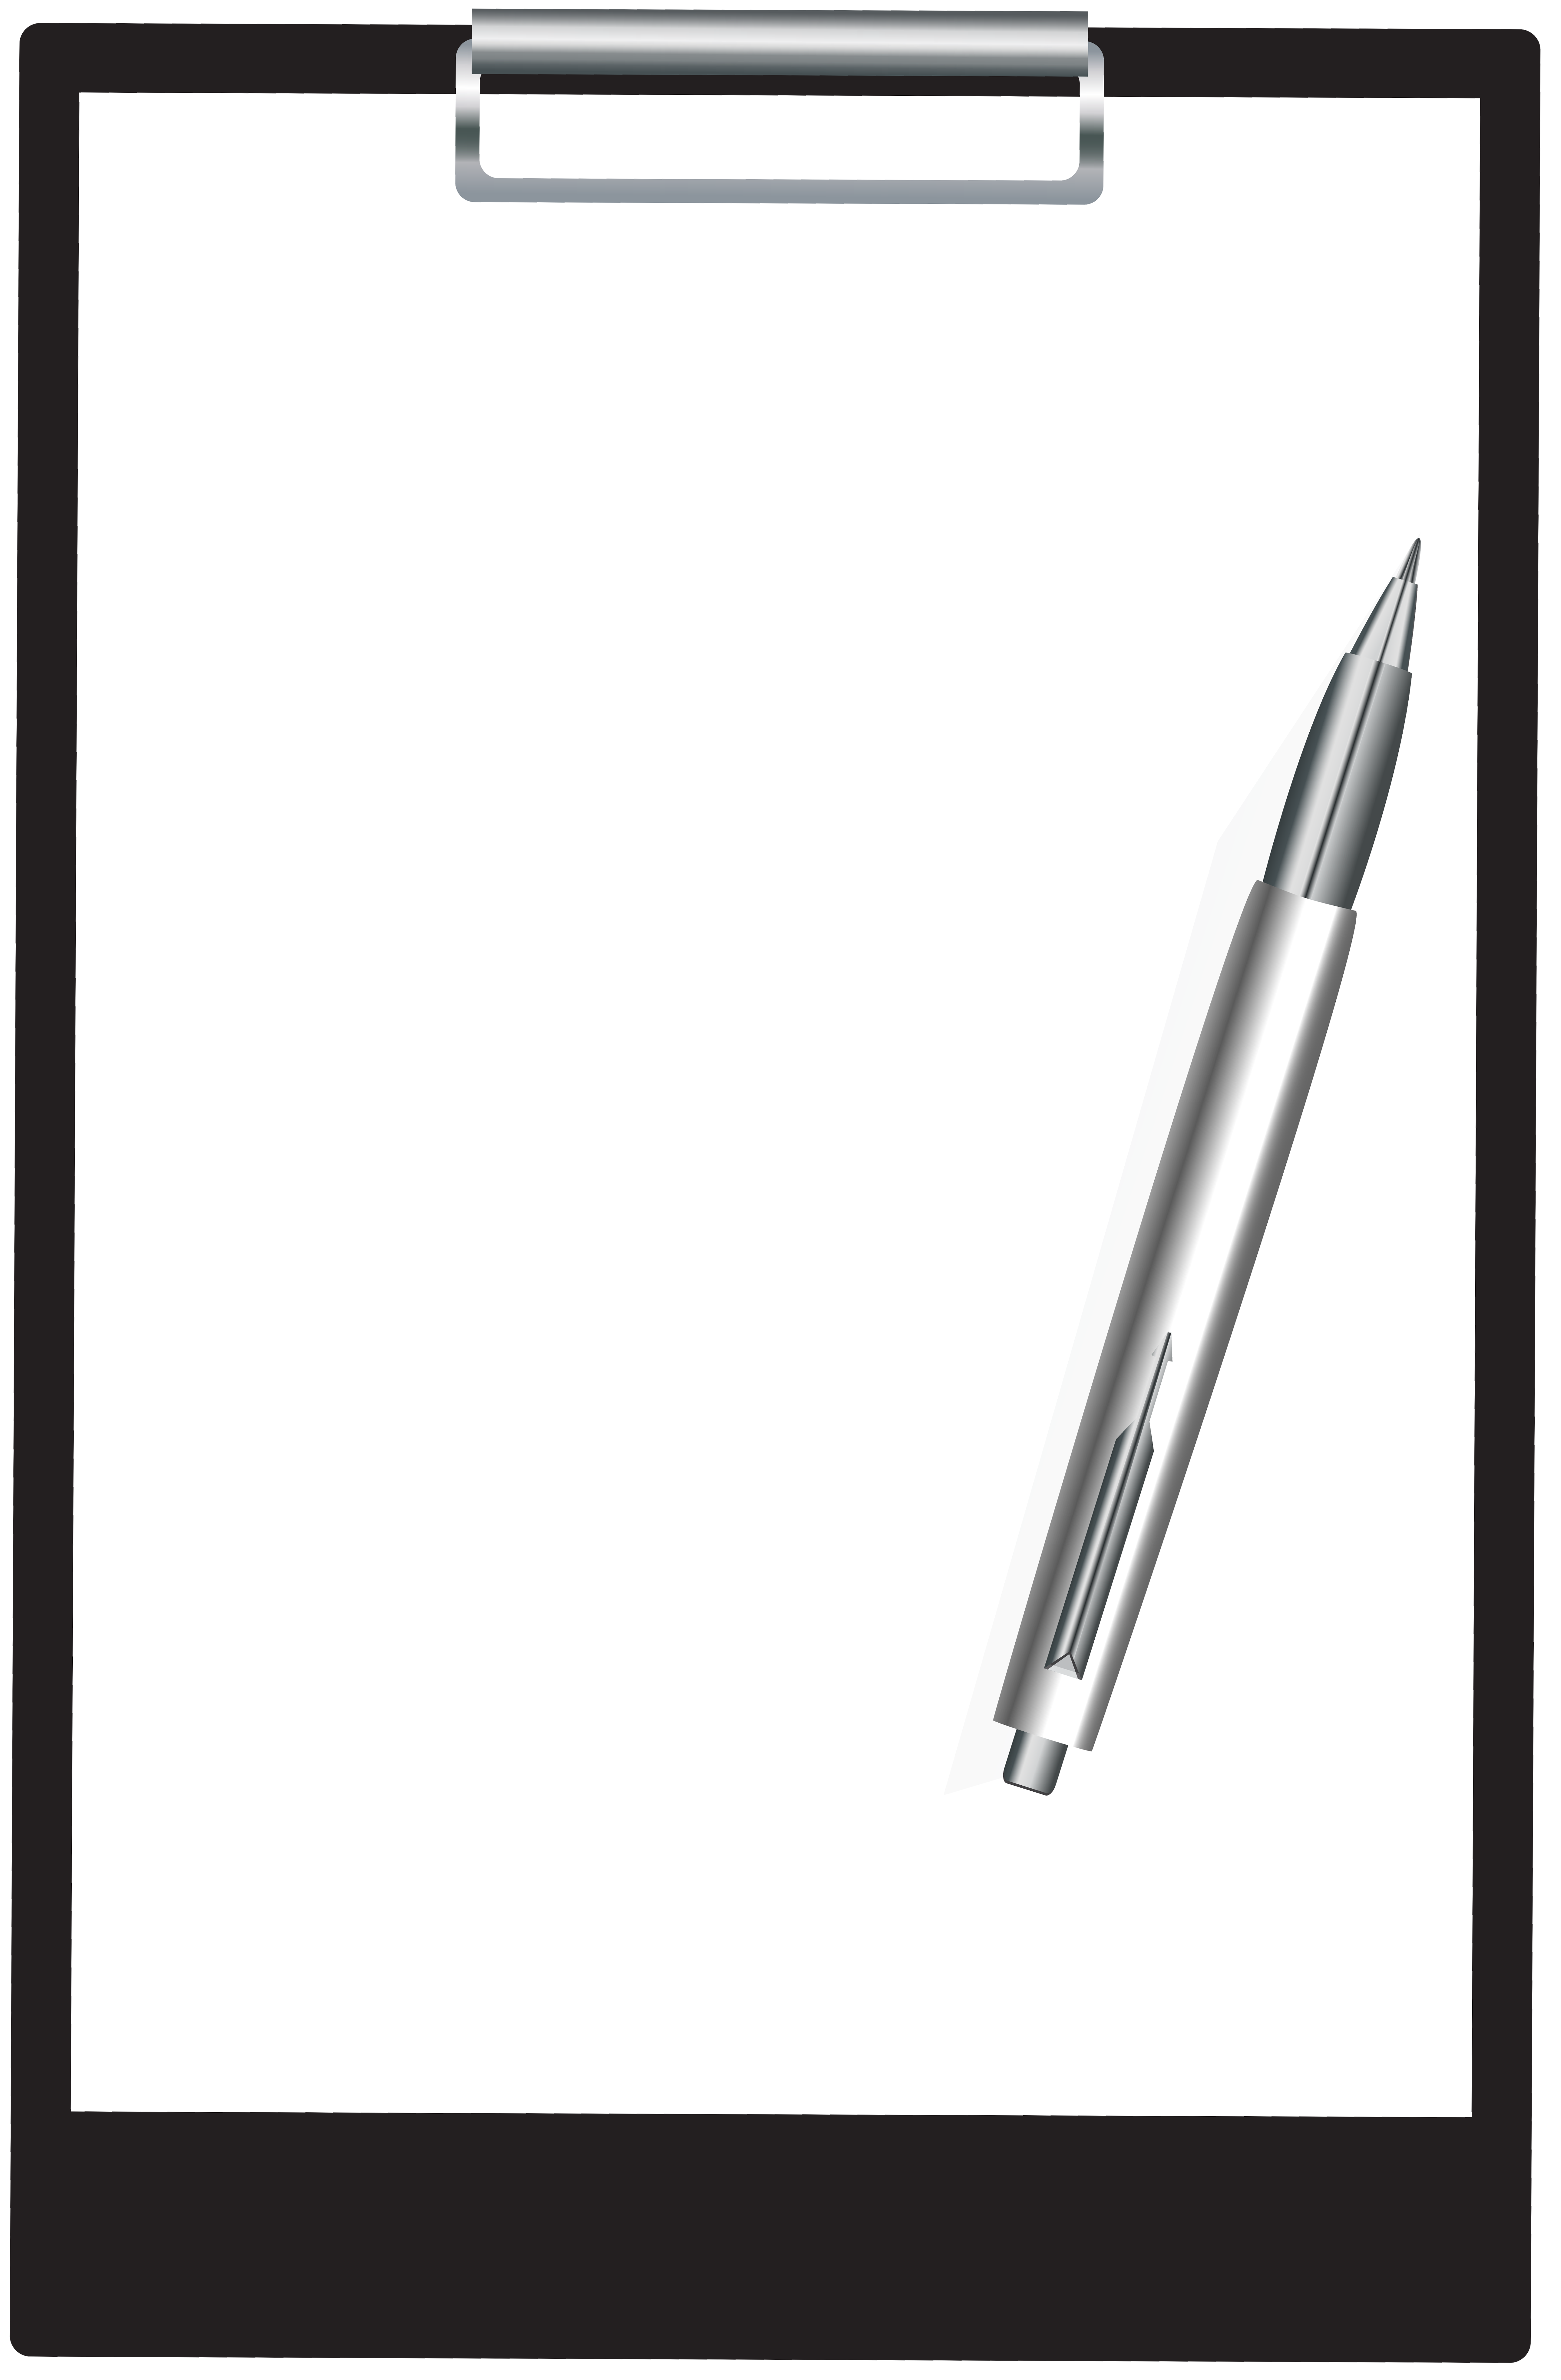 Clipboard With Pen PNG Clip Art Image.